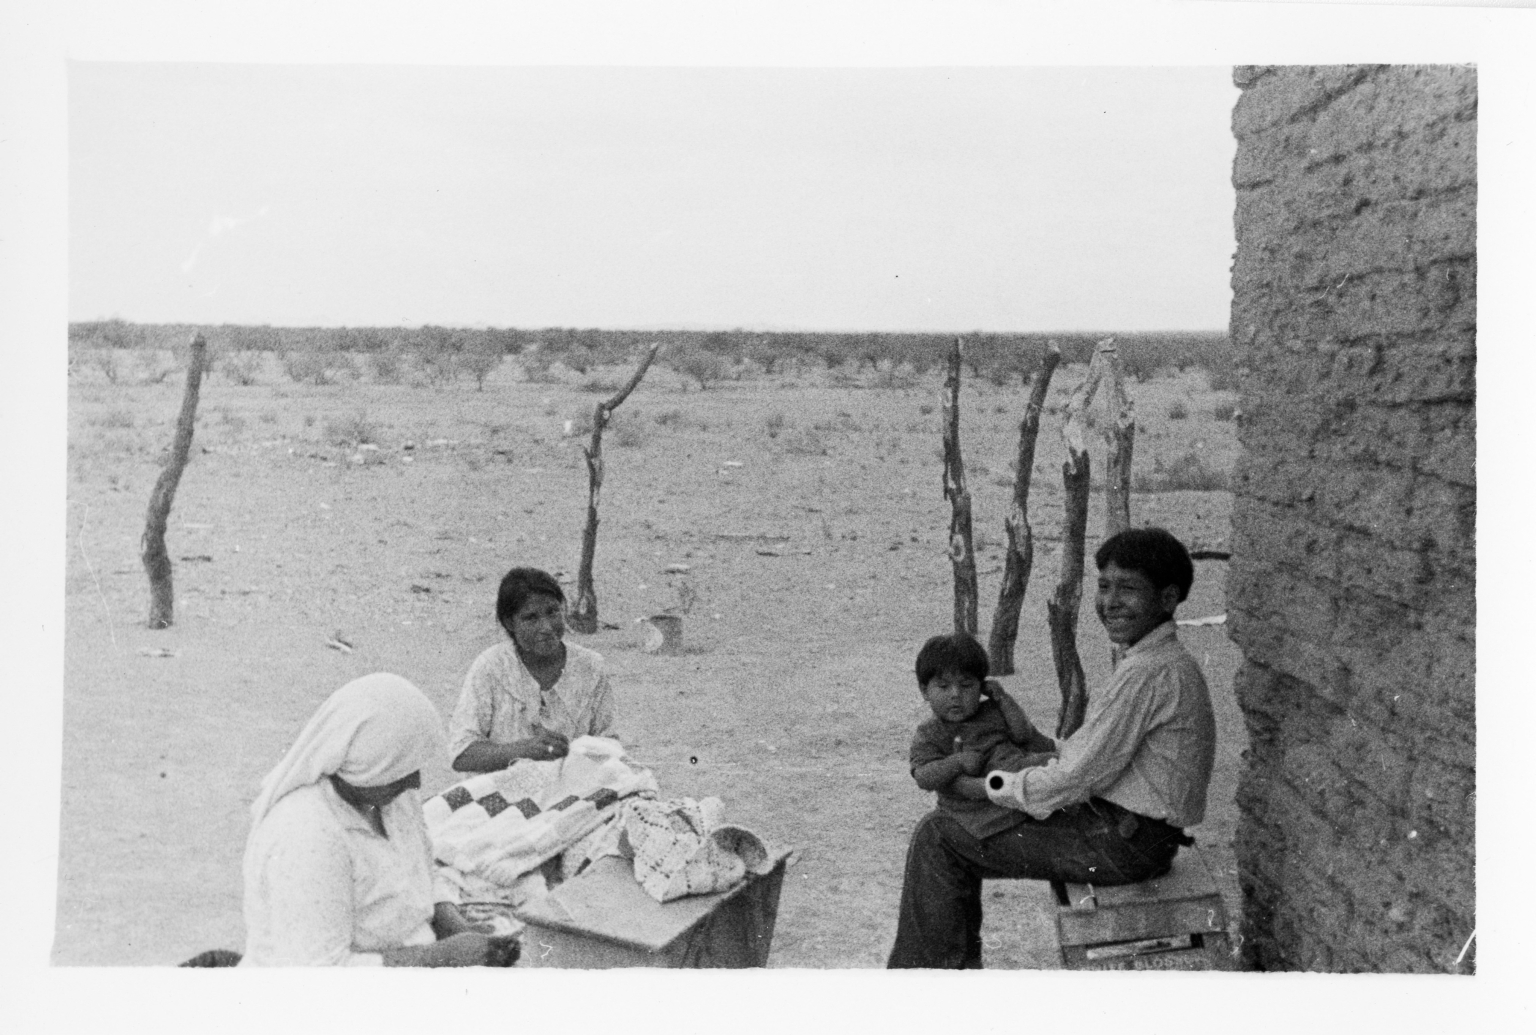 Tohono O'odham Women and Children